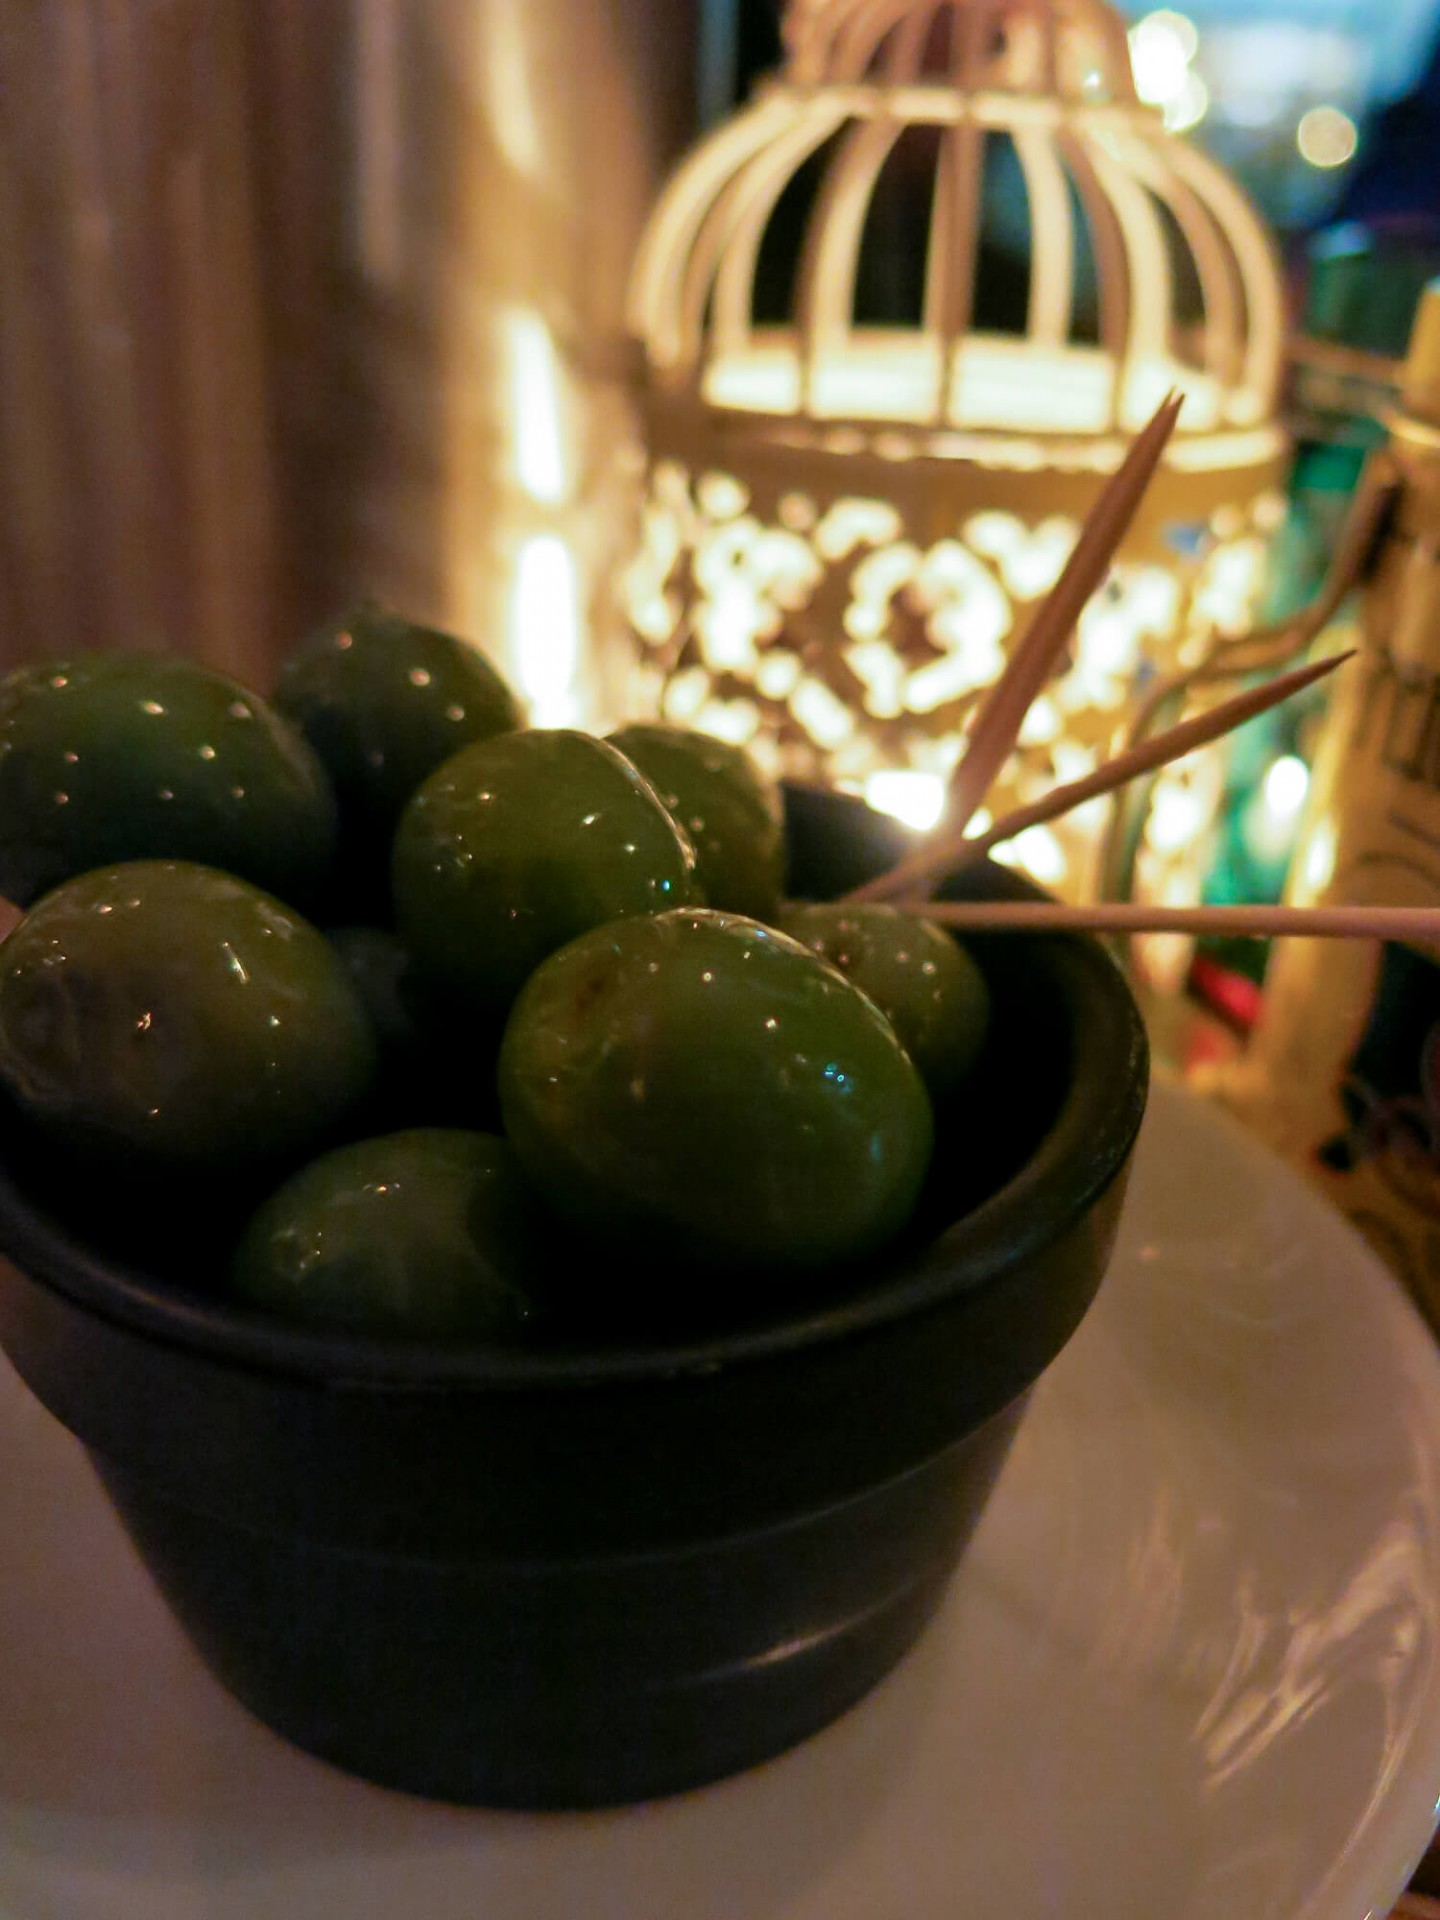 Juicy green olives at Meridionale in Fulham, London. Great pizza and interesting pasta menu.